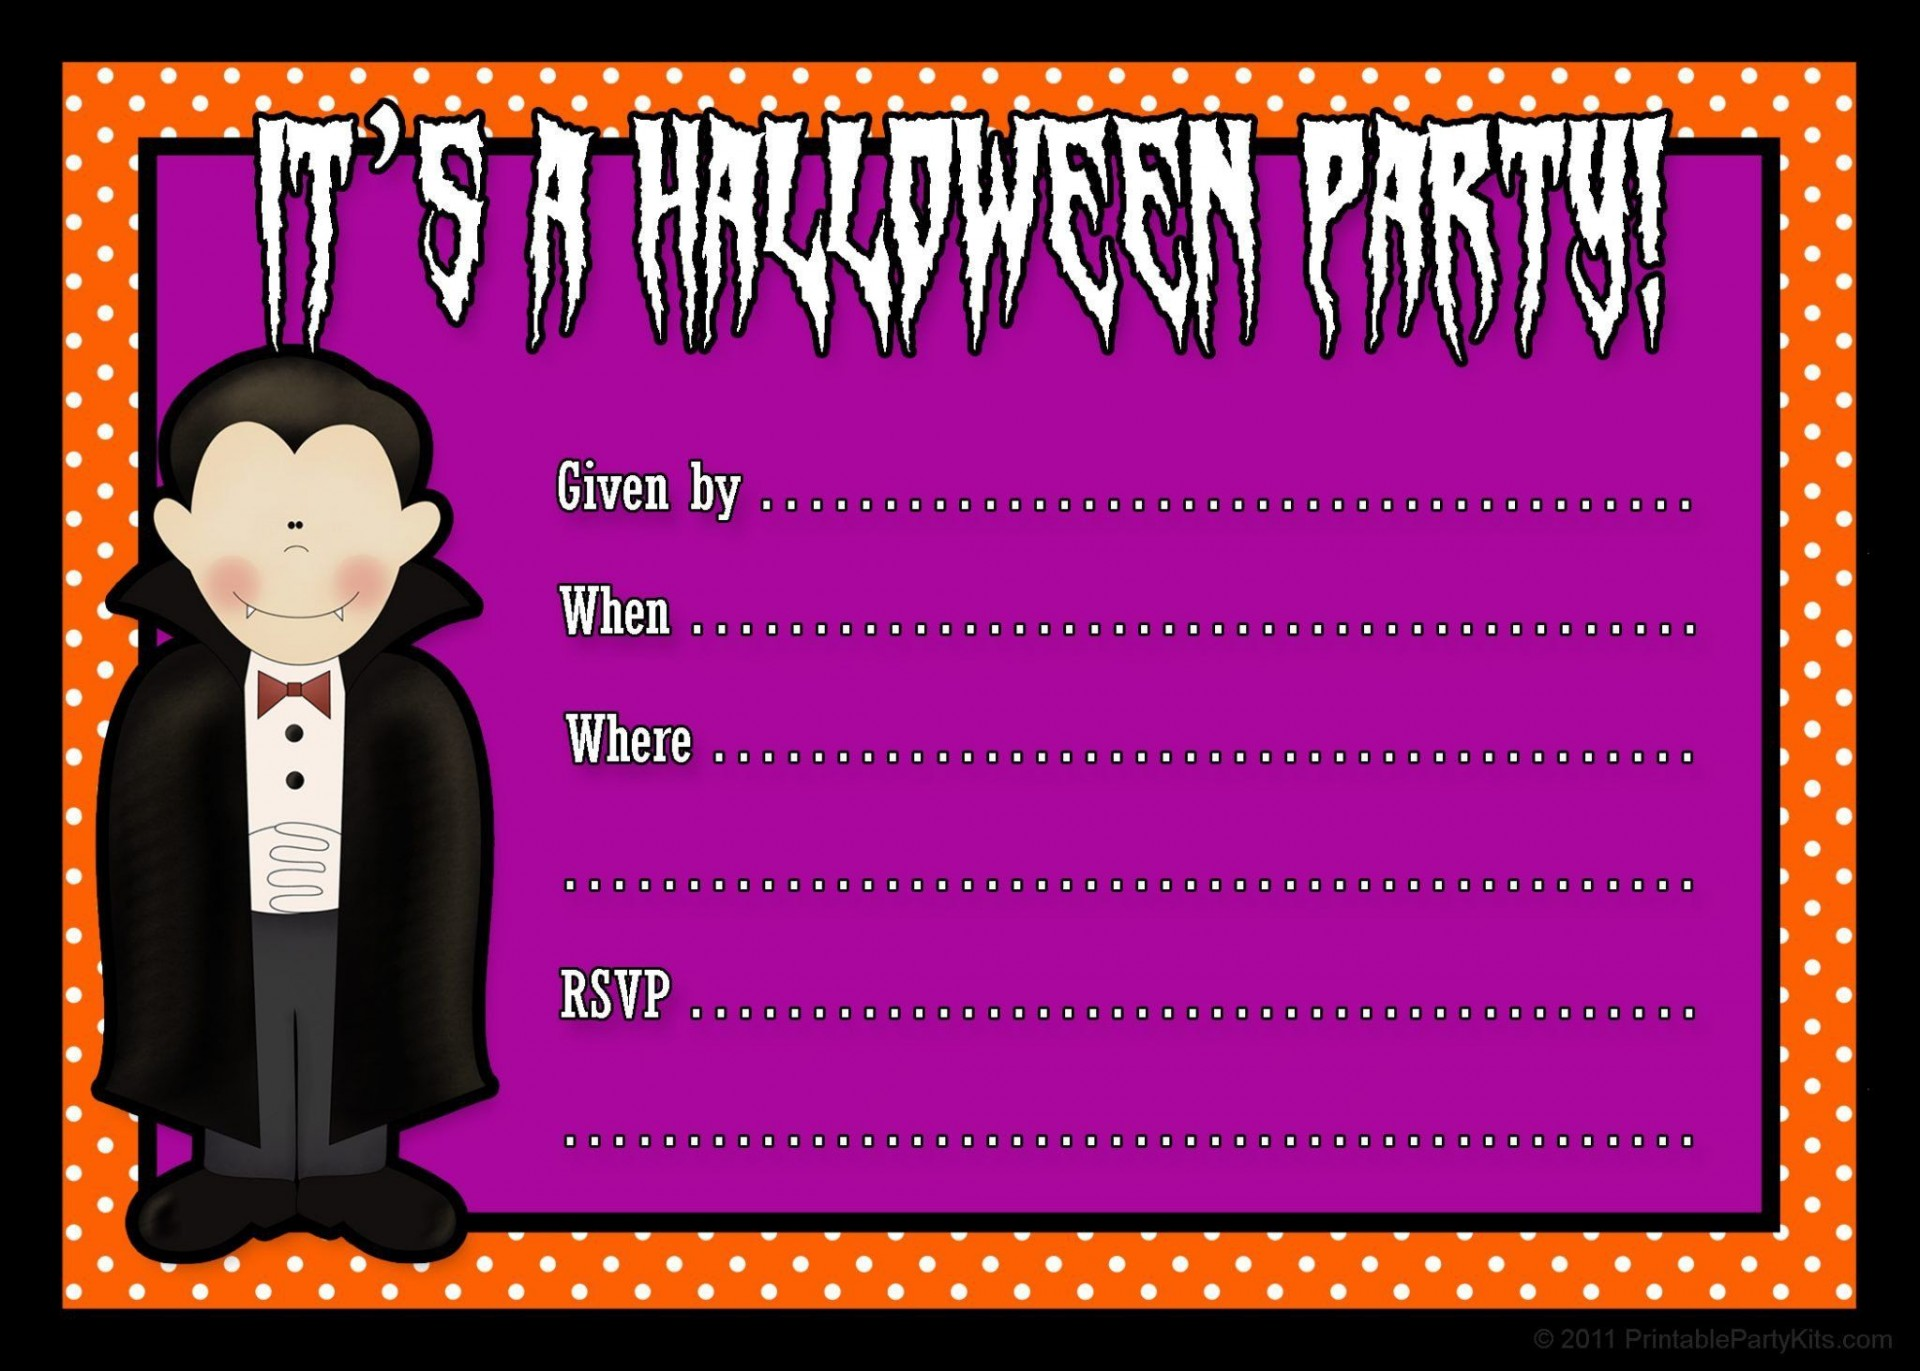 001 Fascinating Free Halloween Party Invitation Template Highest Quality  Templates Download Printable Birthday1920